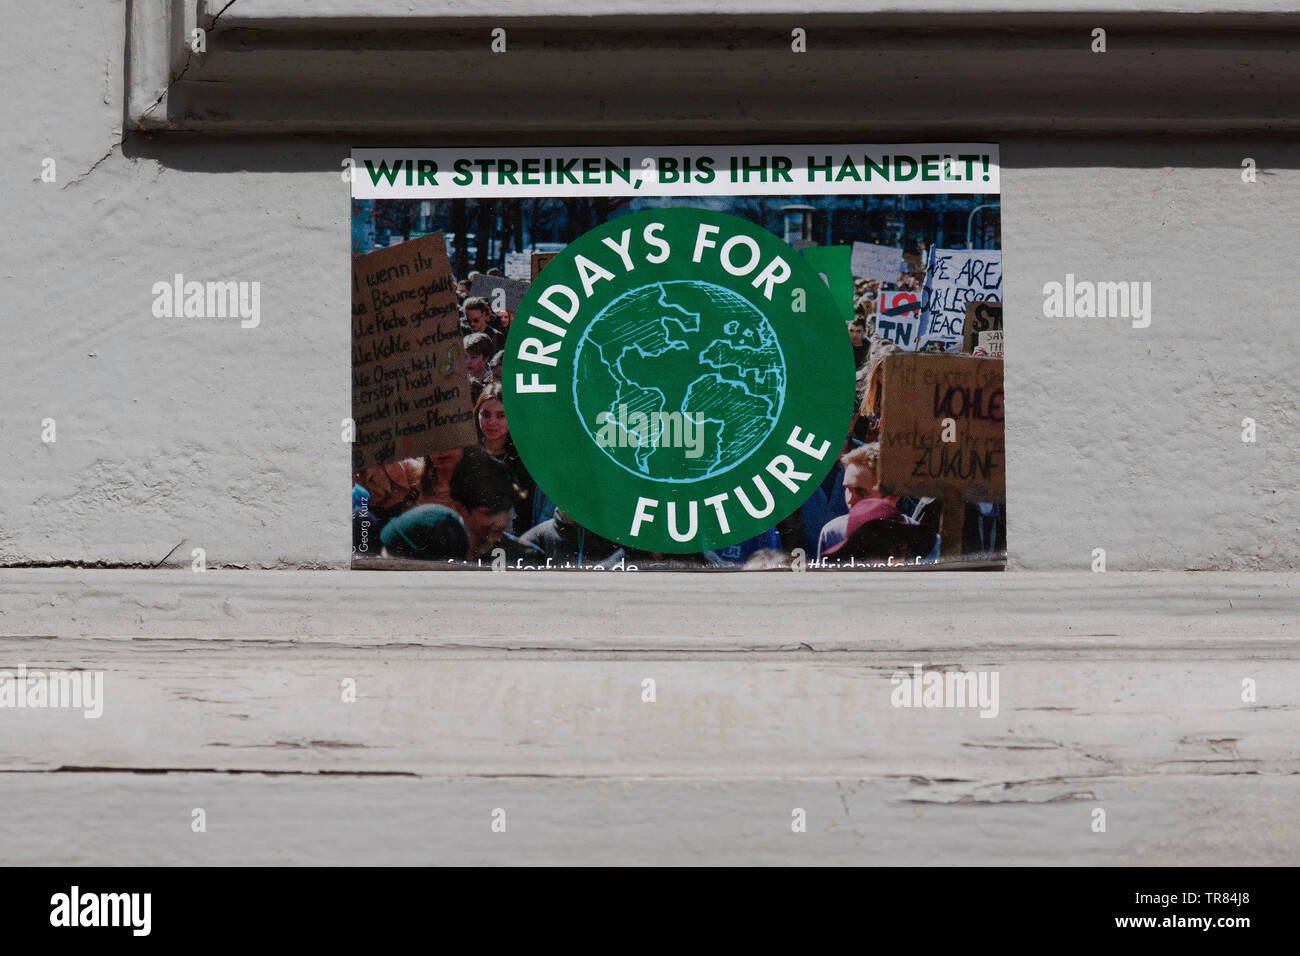 Sticker, Fridays for future in Berlin, Germany Stock Photo